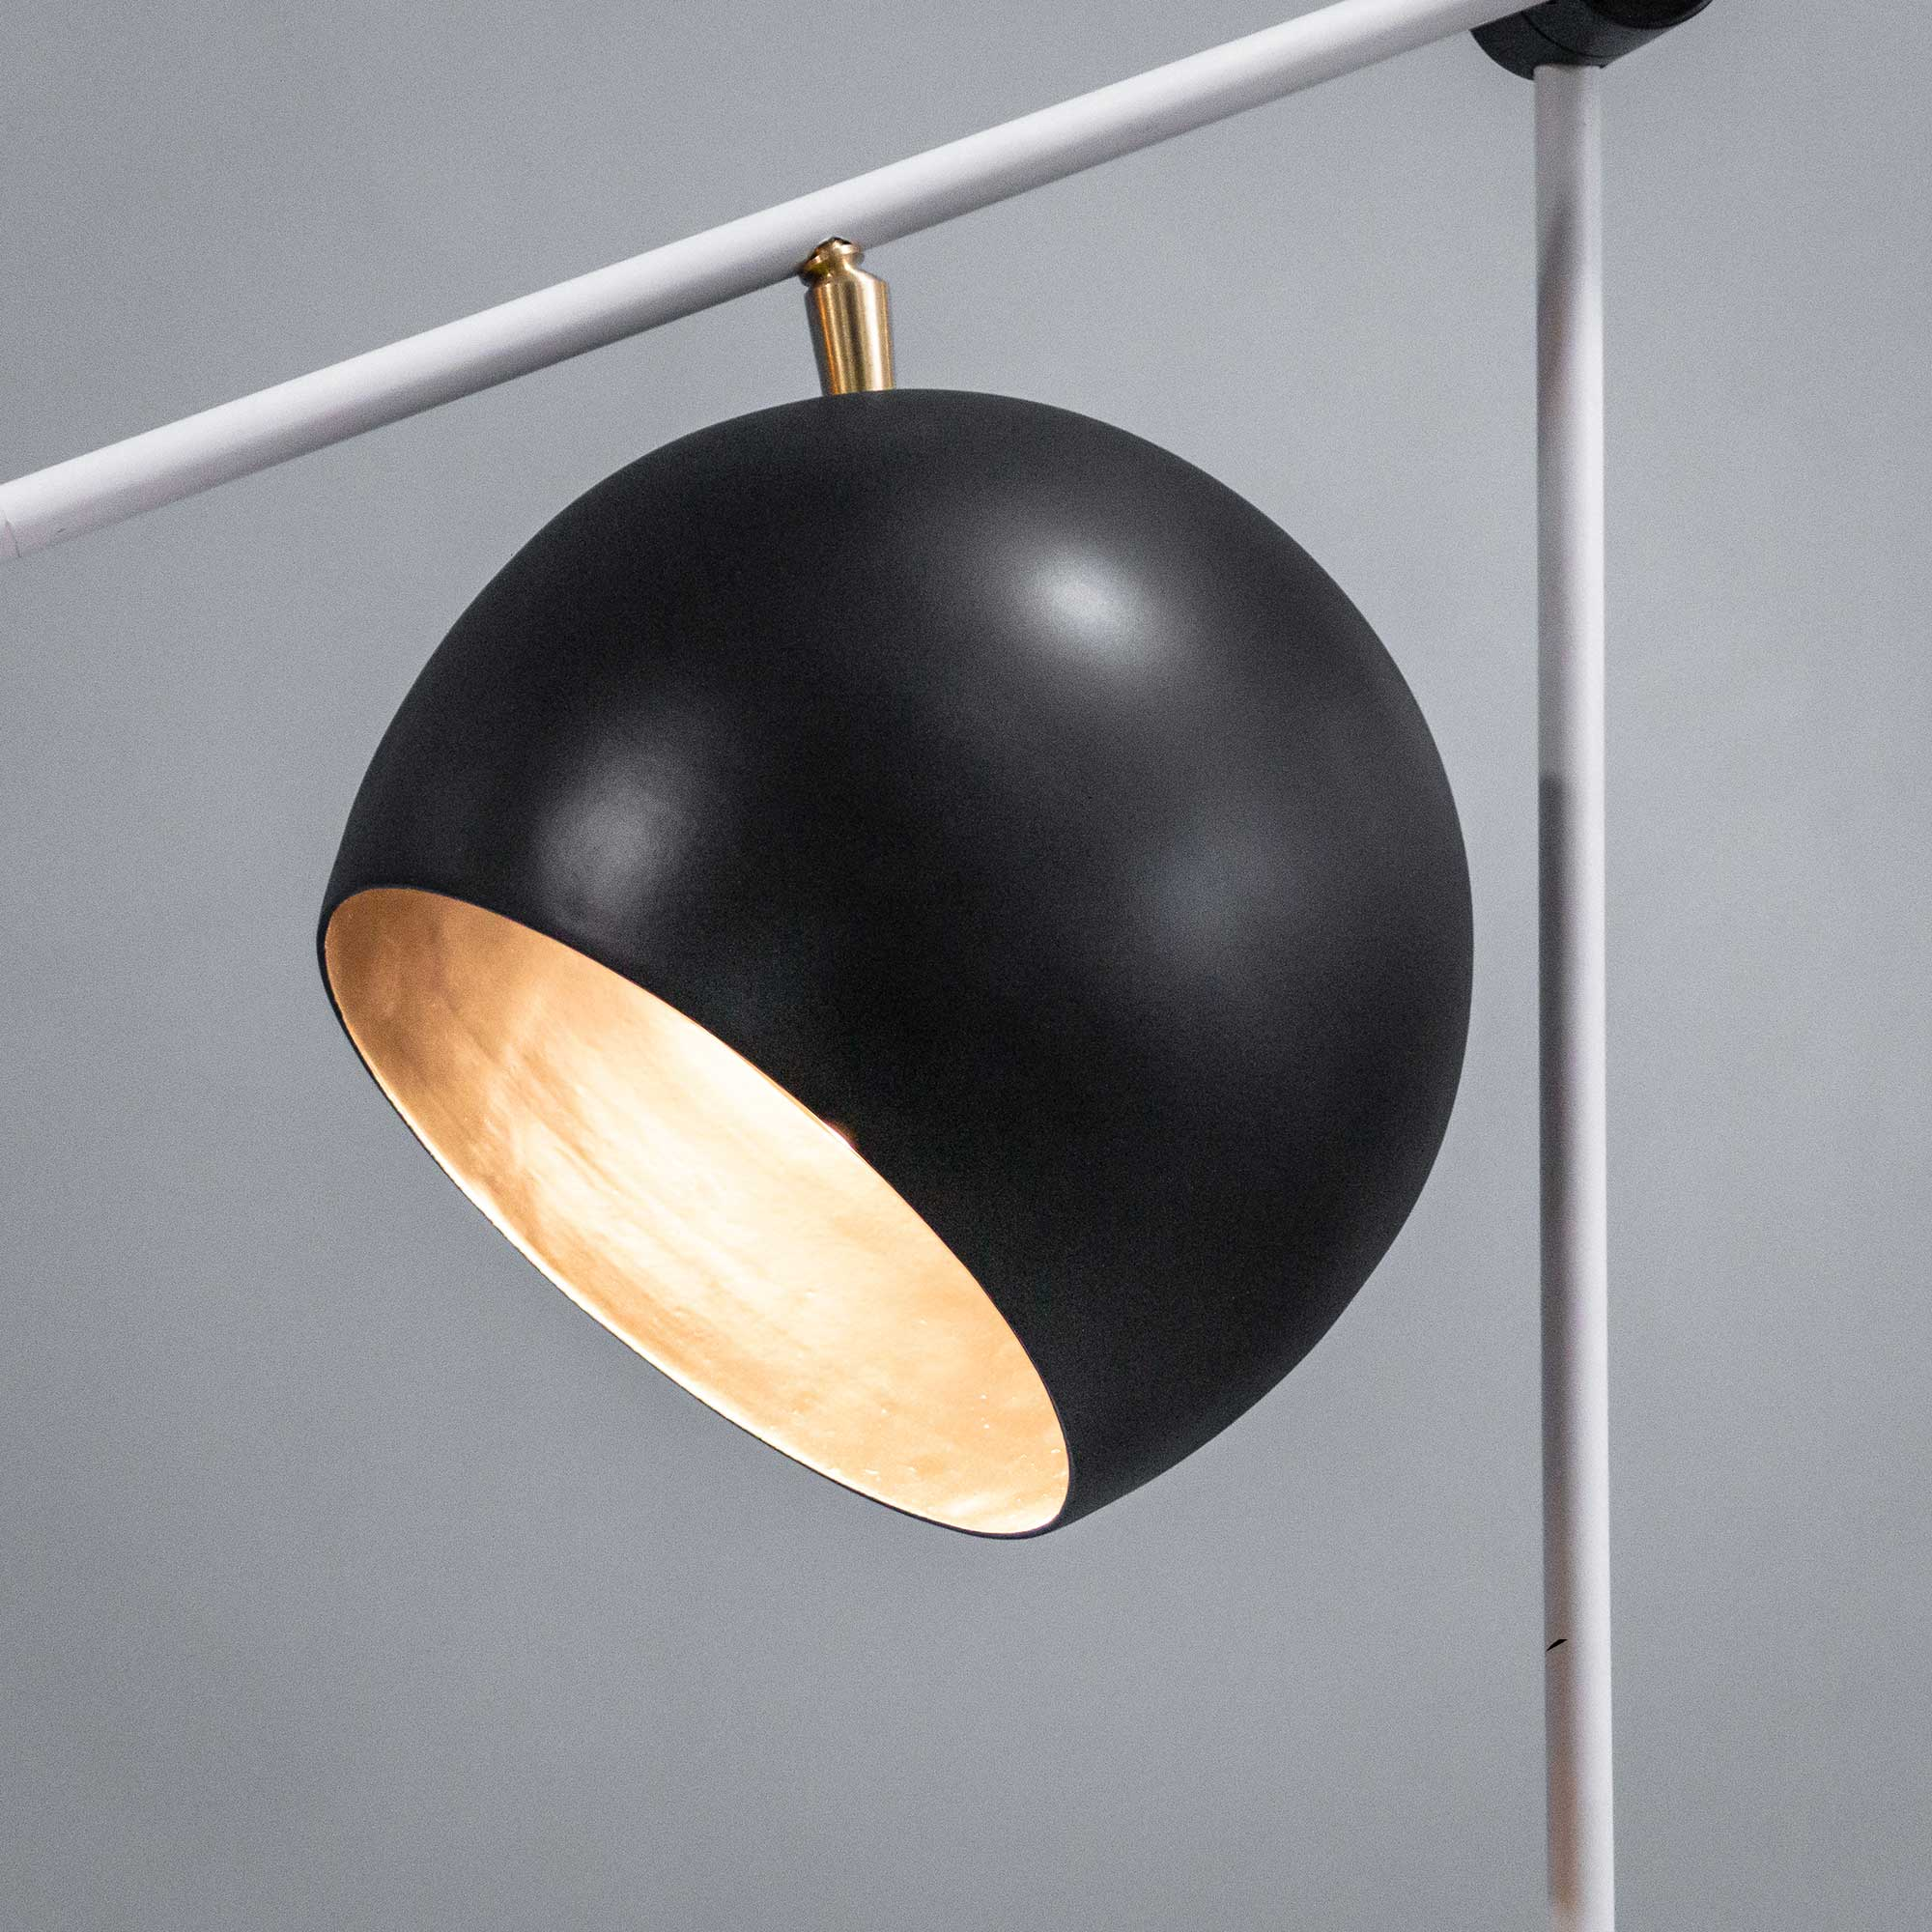 Chester Black and White Contemporary Floor Lamp - The Black Steel